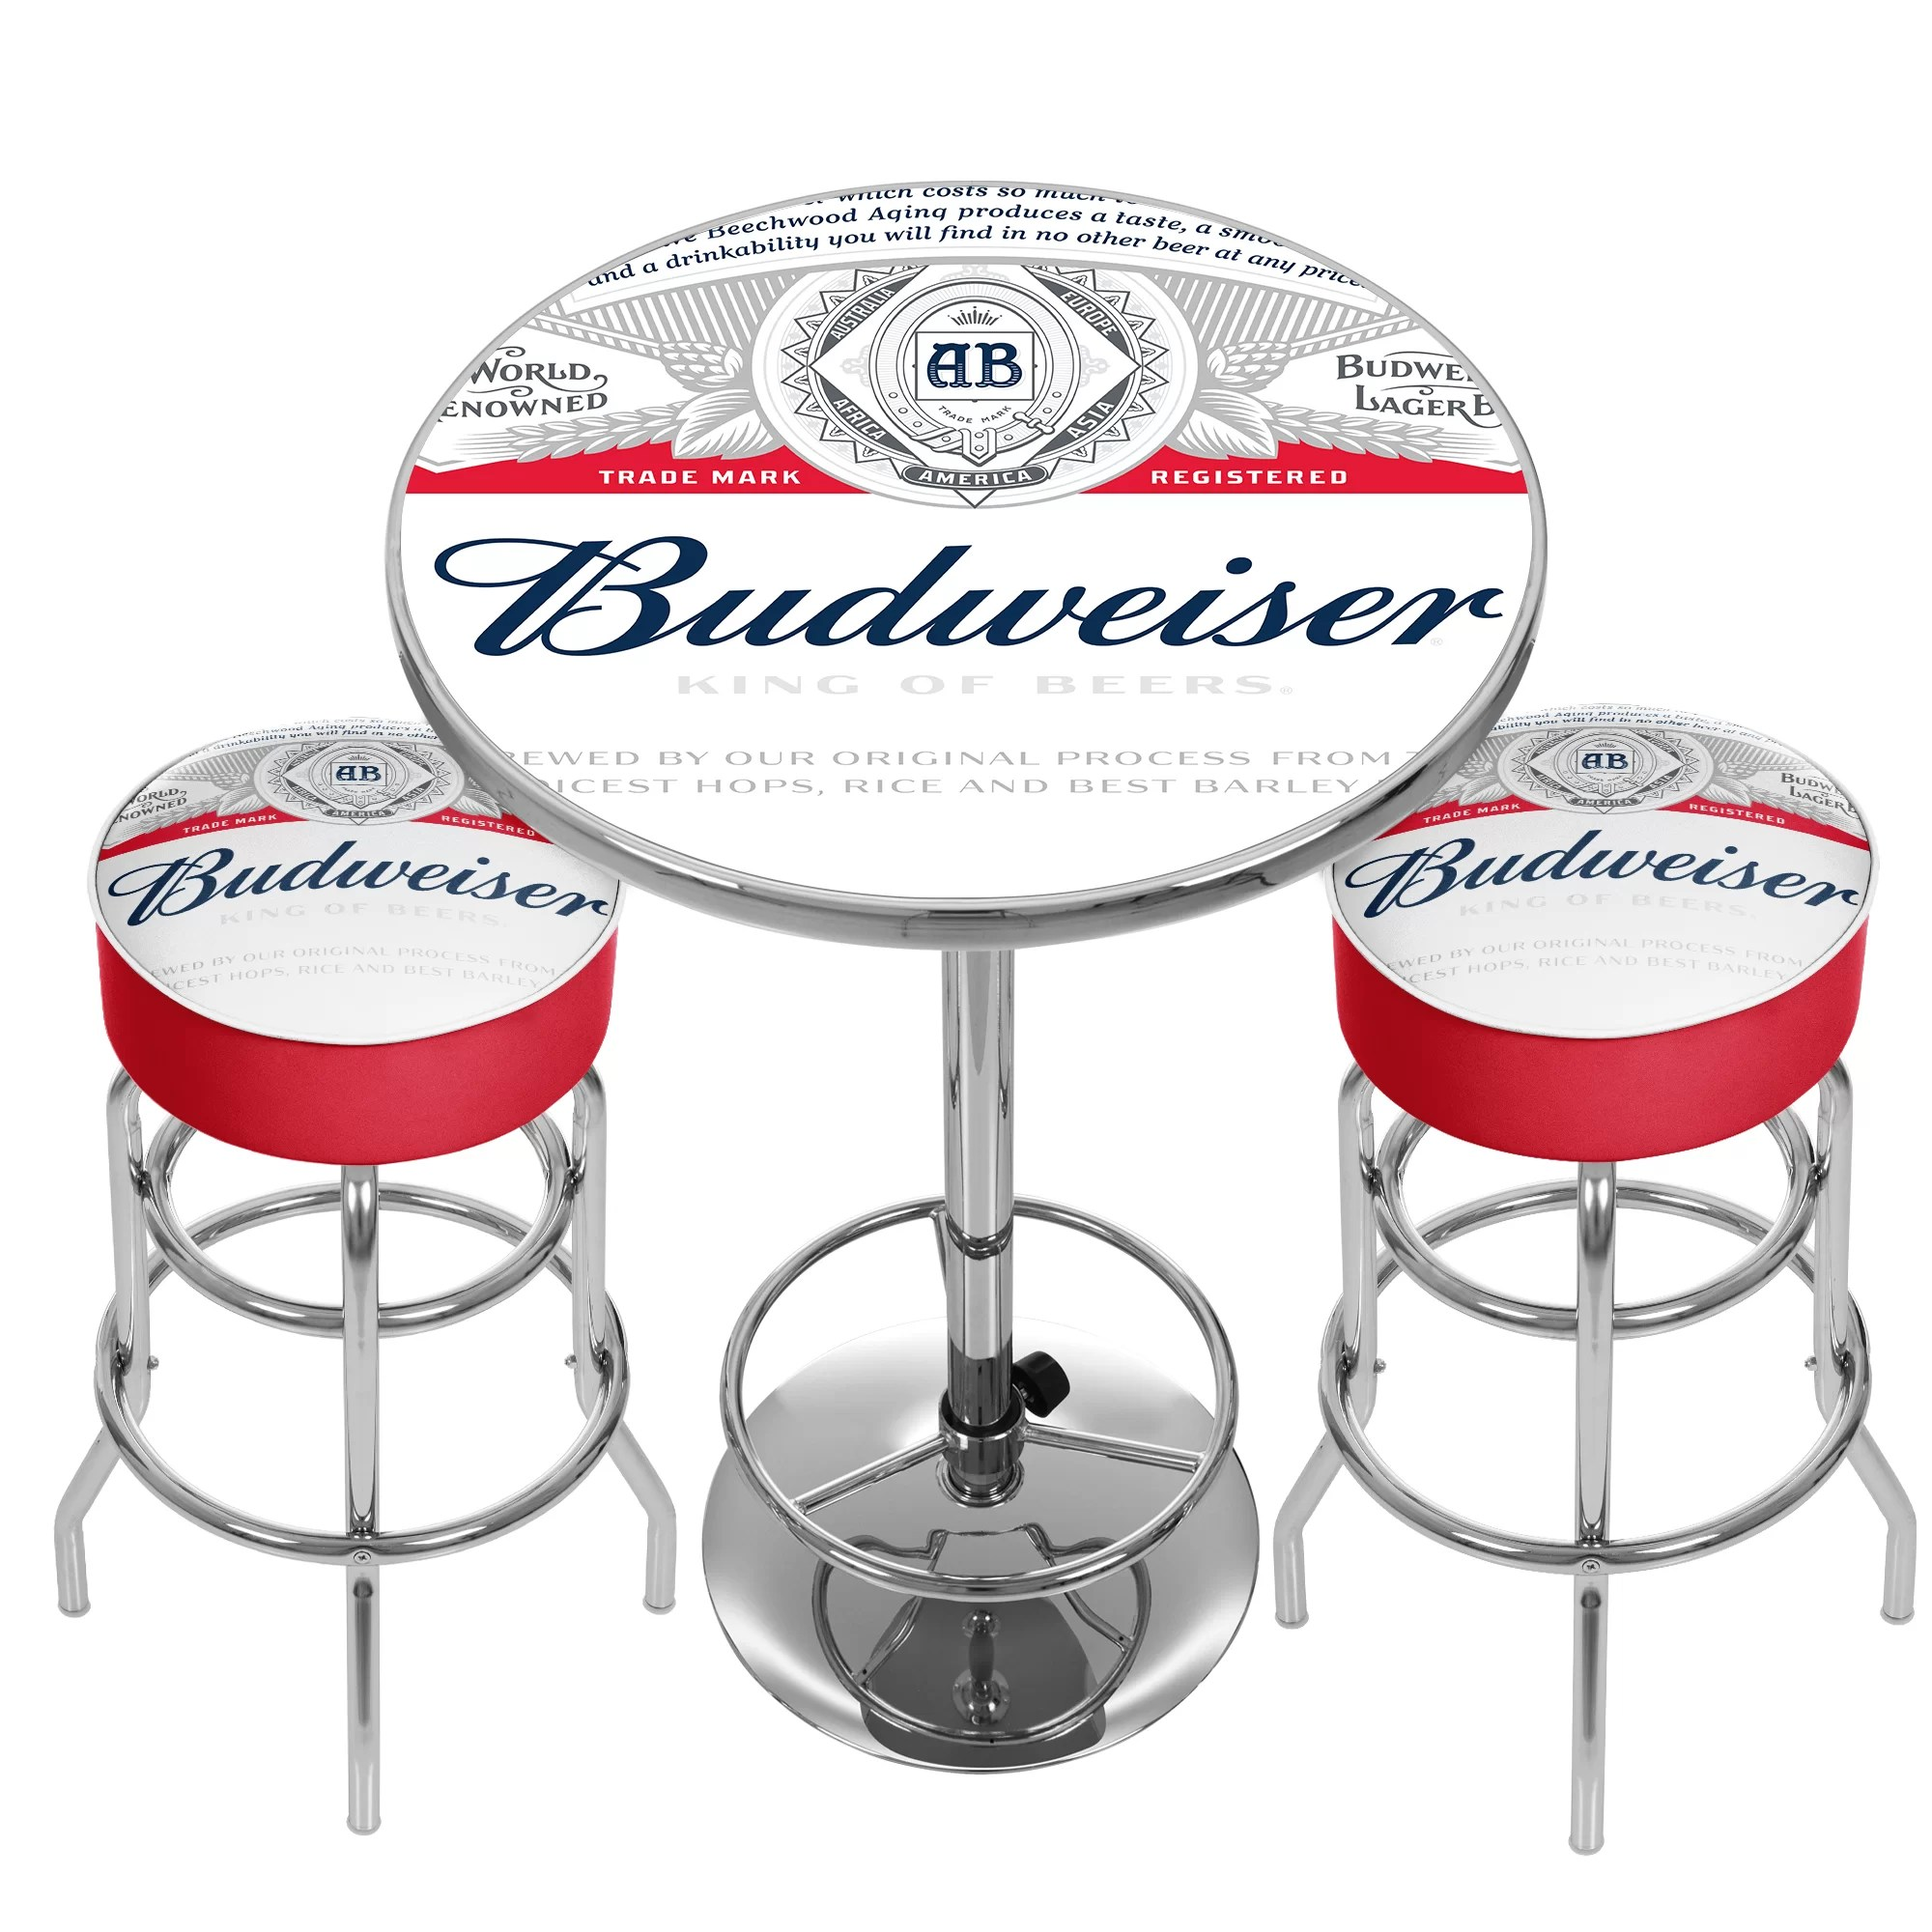 Guitar Stool Australia Budweiser Label Game Room Combo 3 Piece Pub Table Set